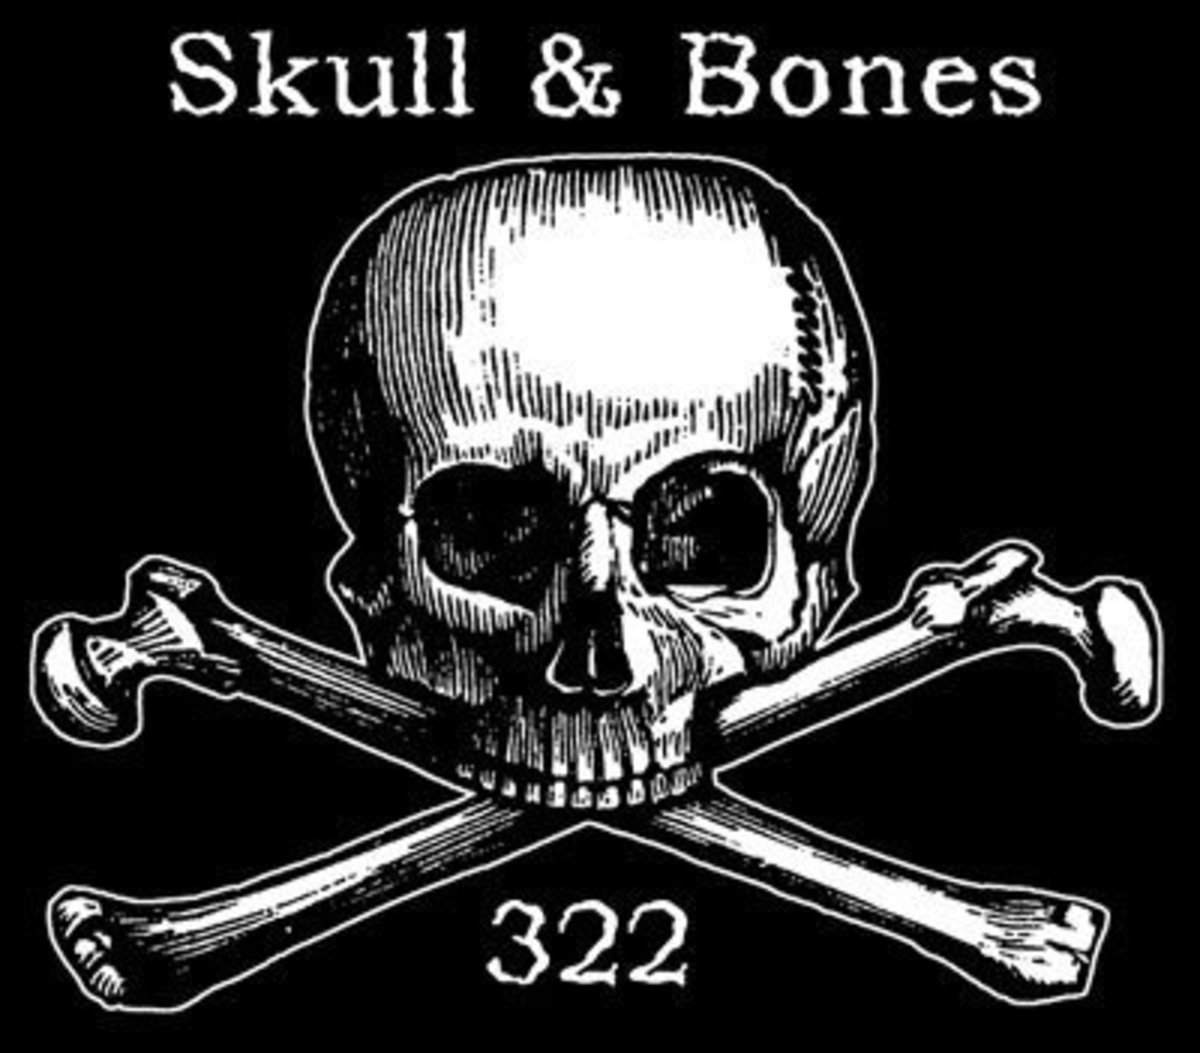 Groups into Personal Power, idol worship, and Satanism use 32 and 322.